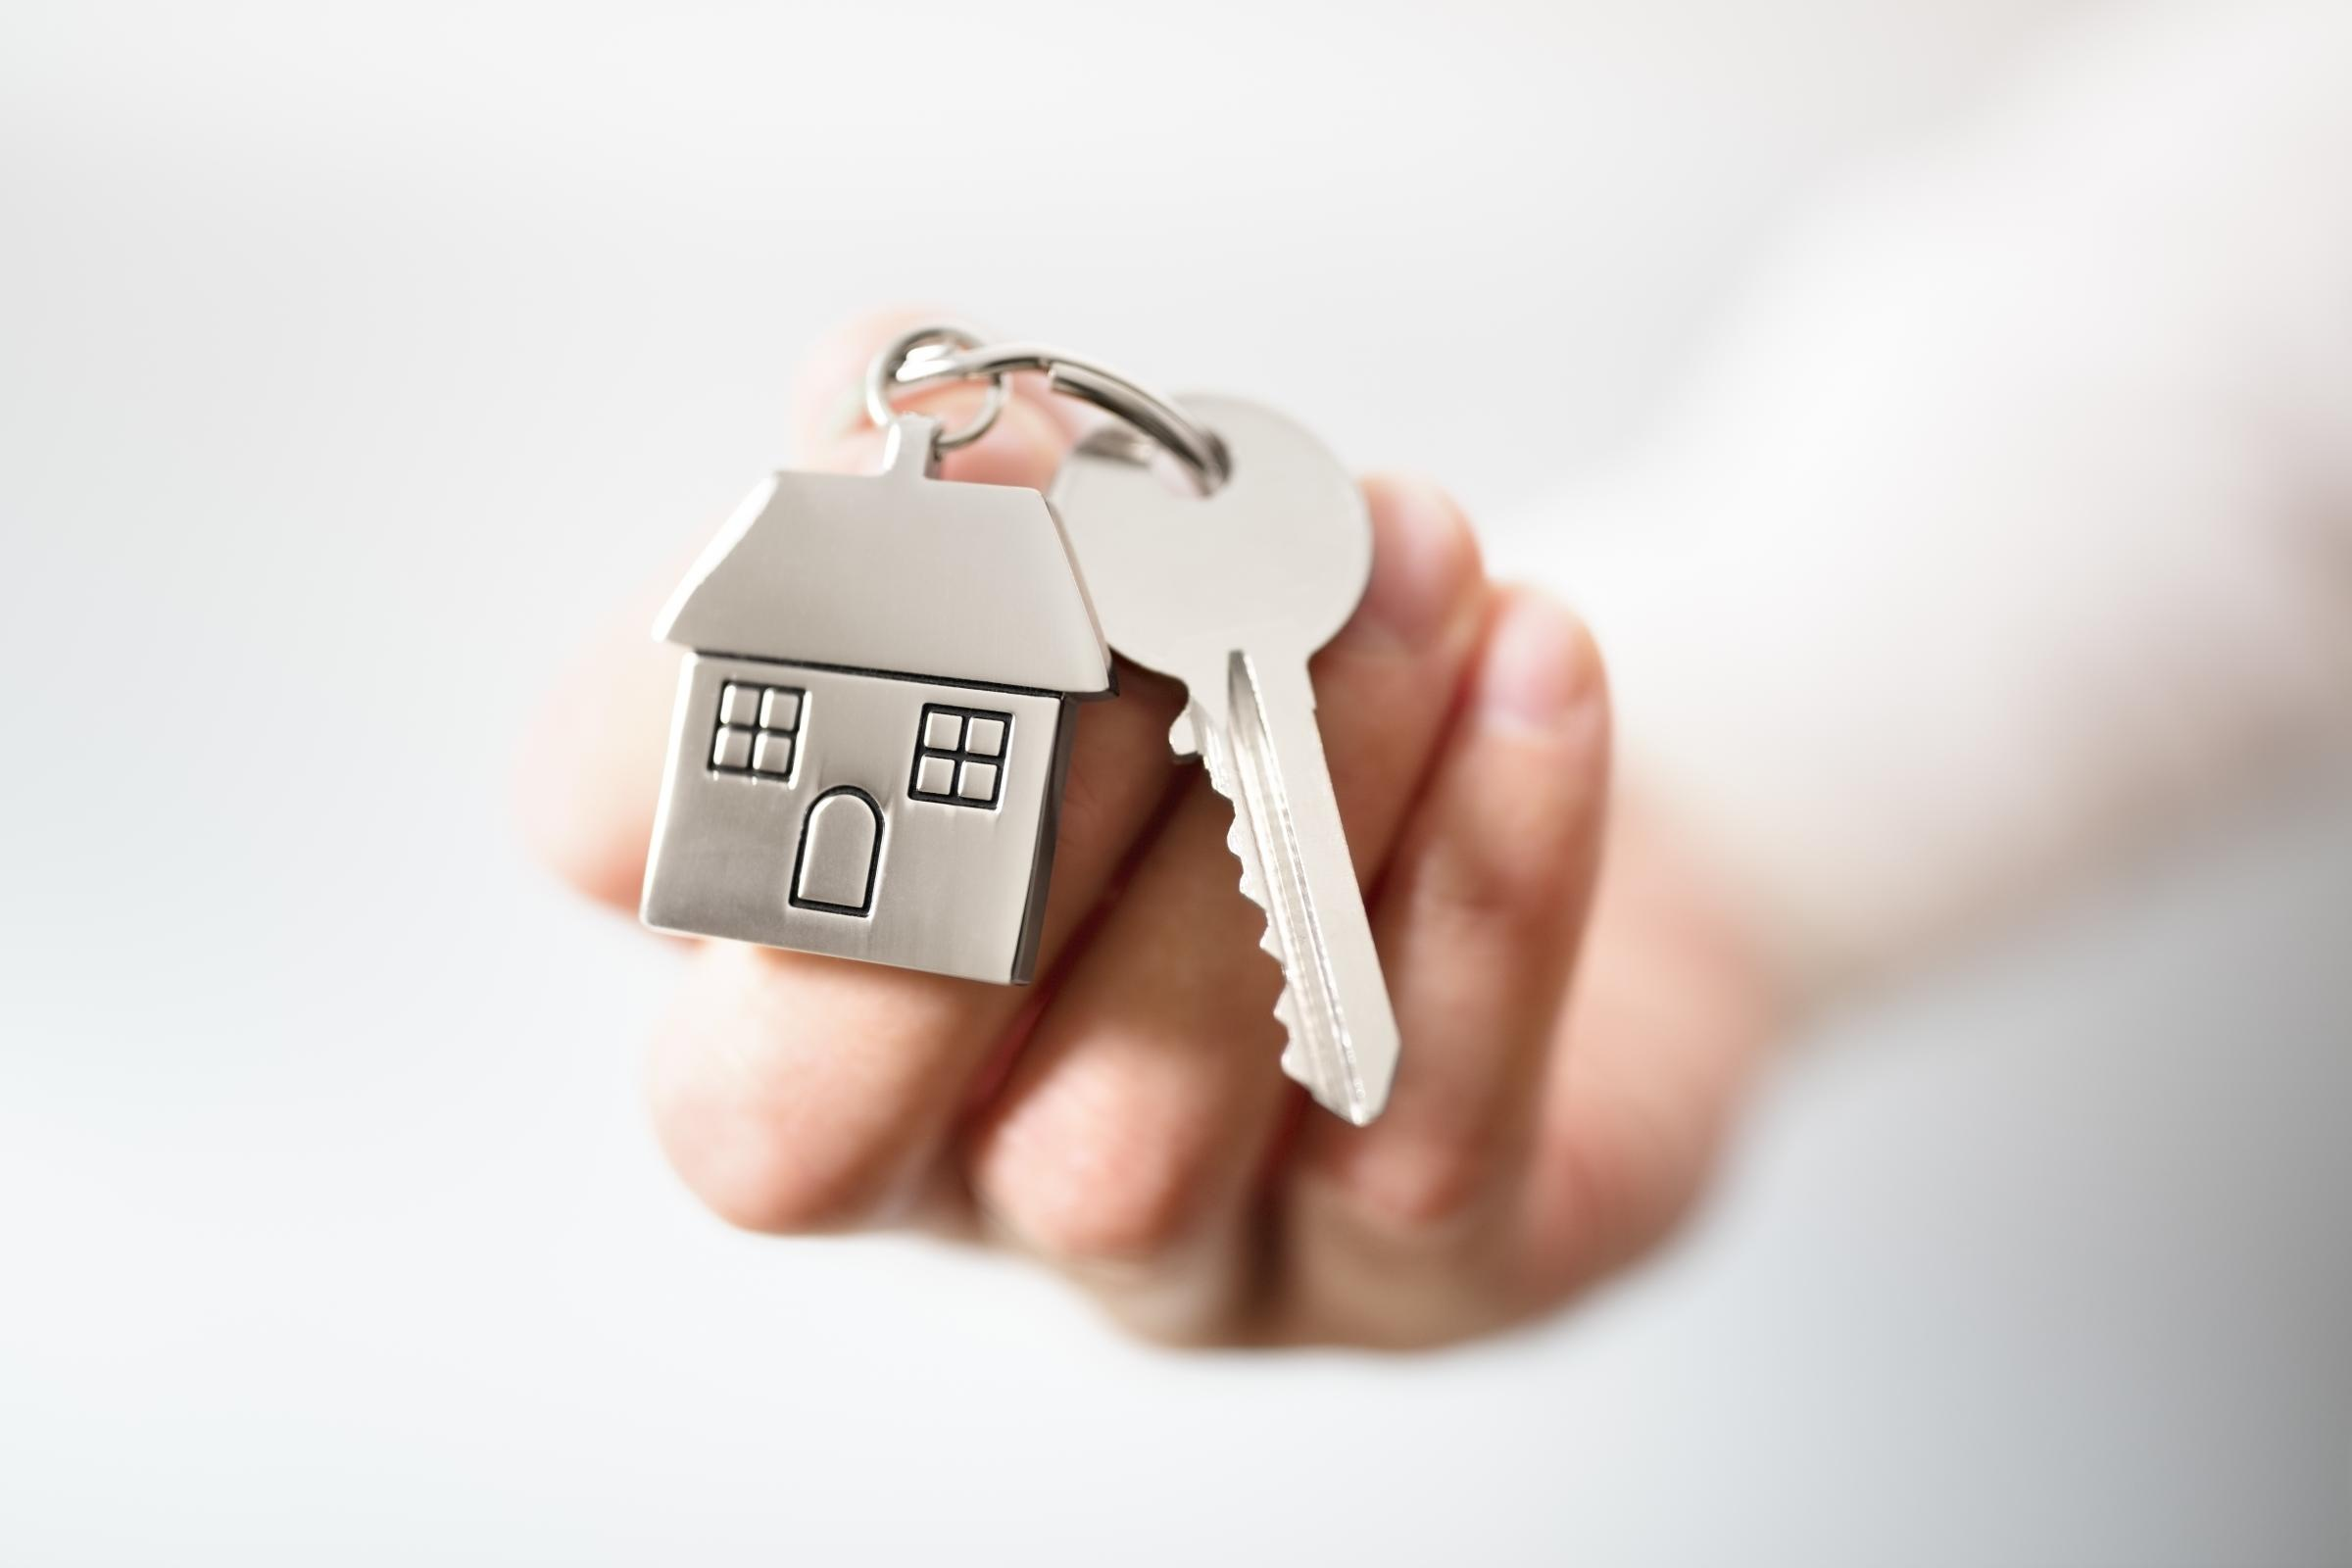 Holding house keys on house shaped keychain concept for buying a new home.